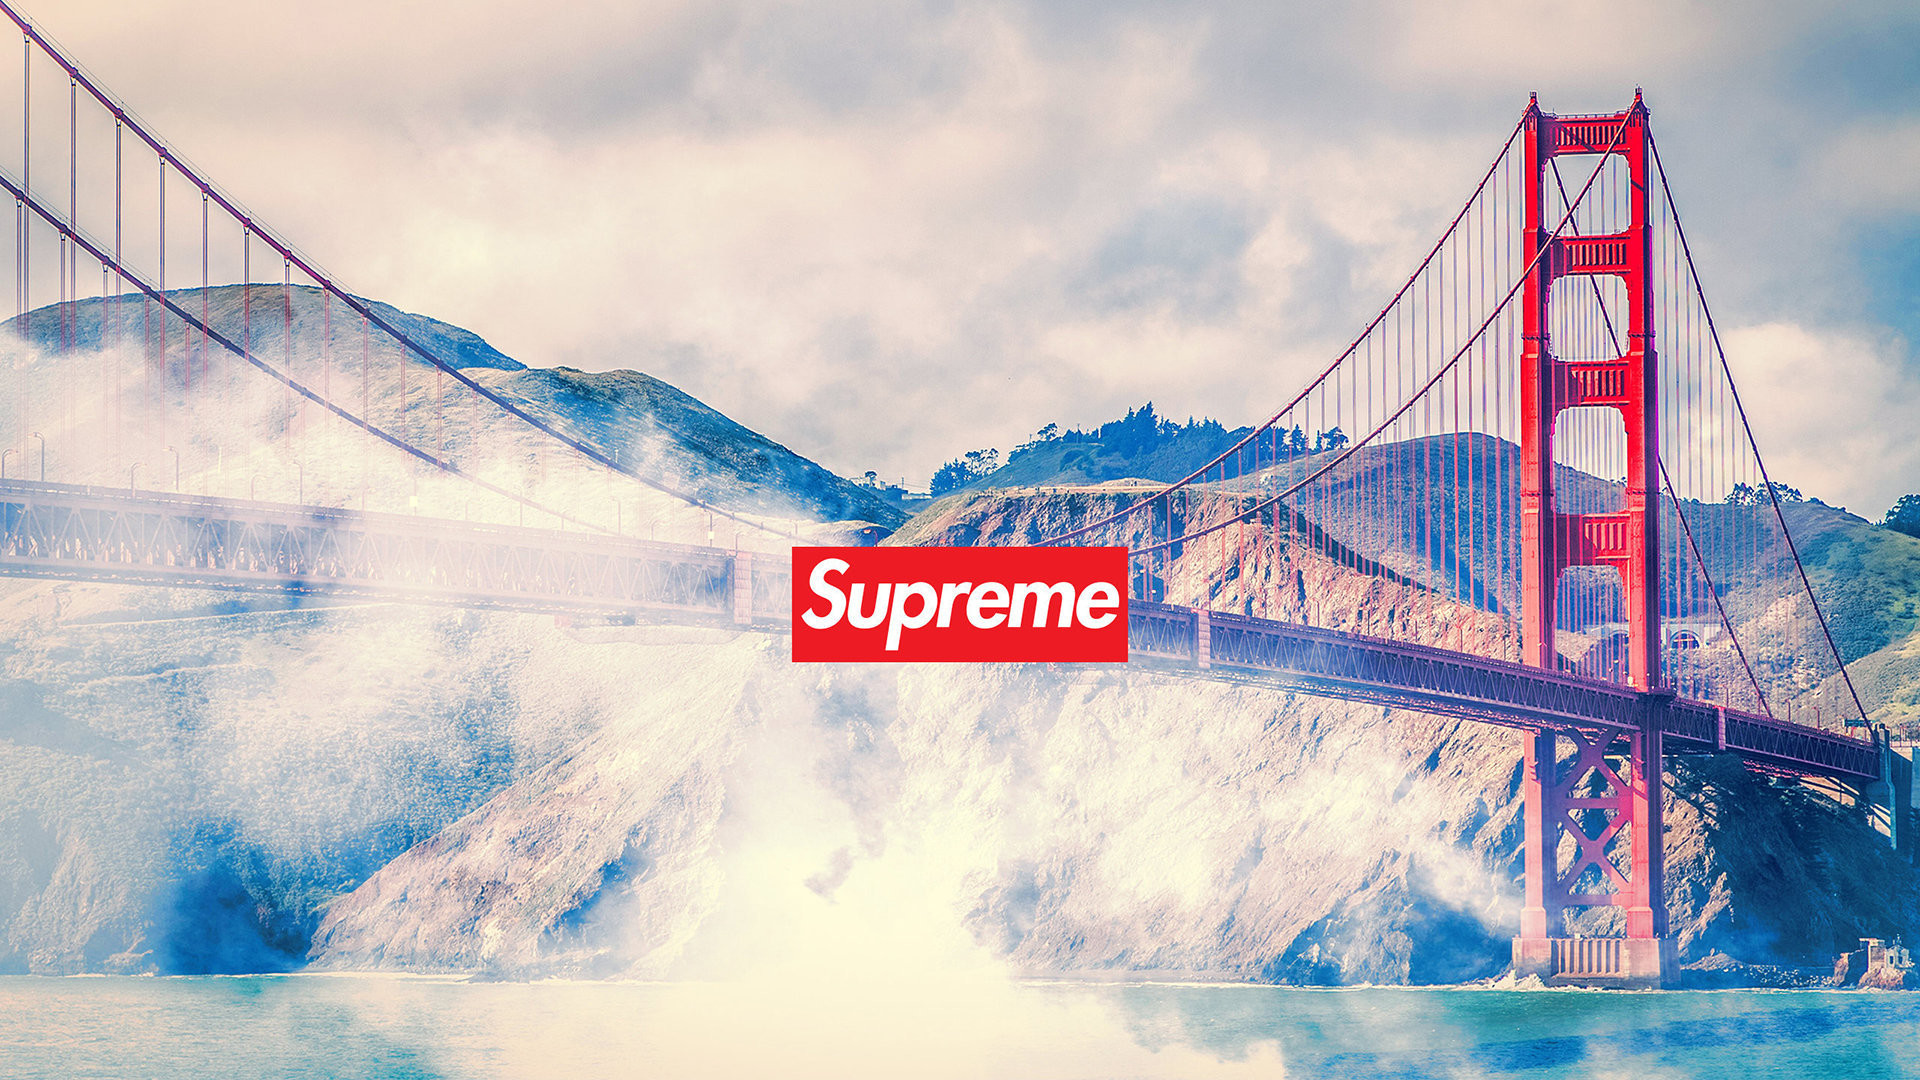 Supreme Wallpaper 73 Images